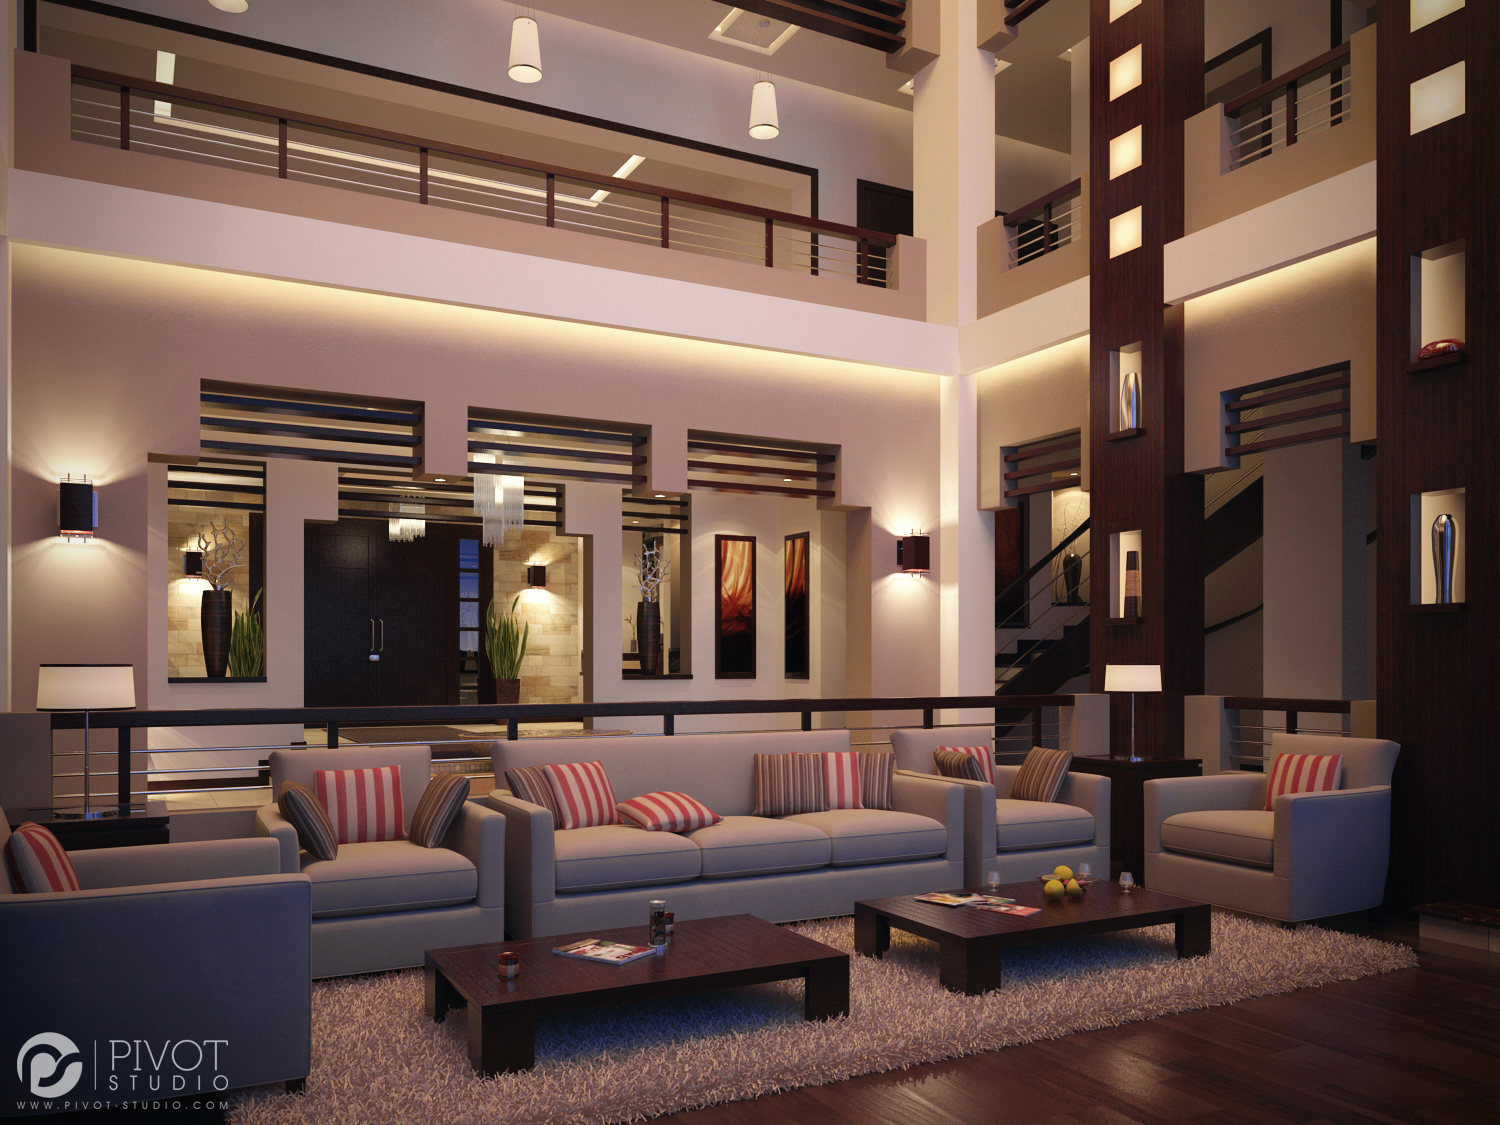 Sophisticated Home Design - Luxurious room schemes